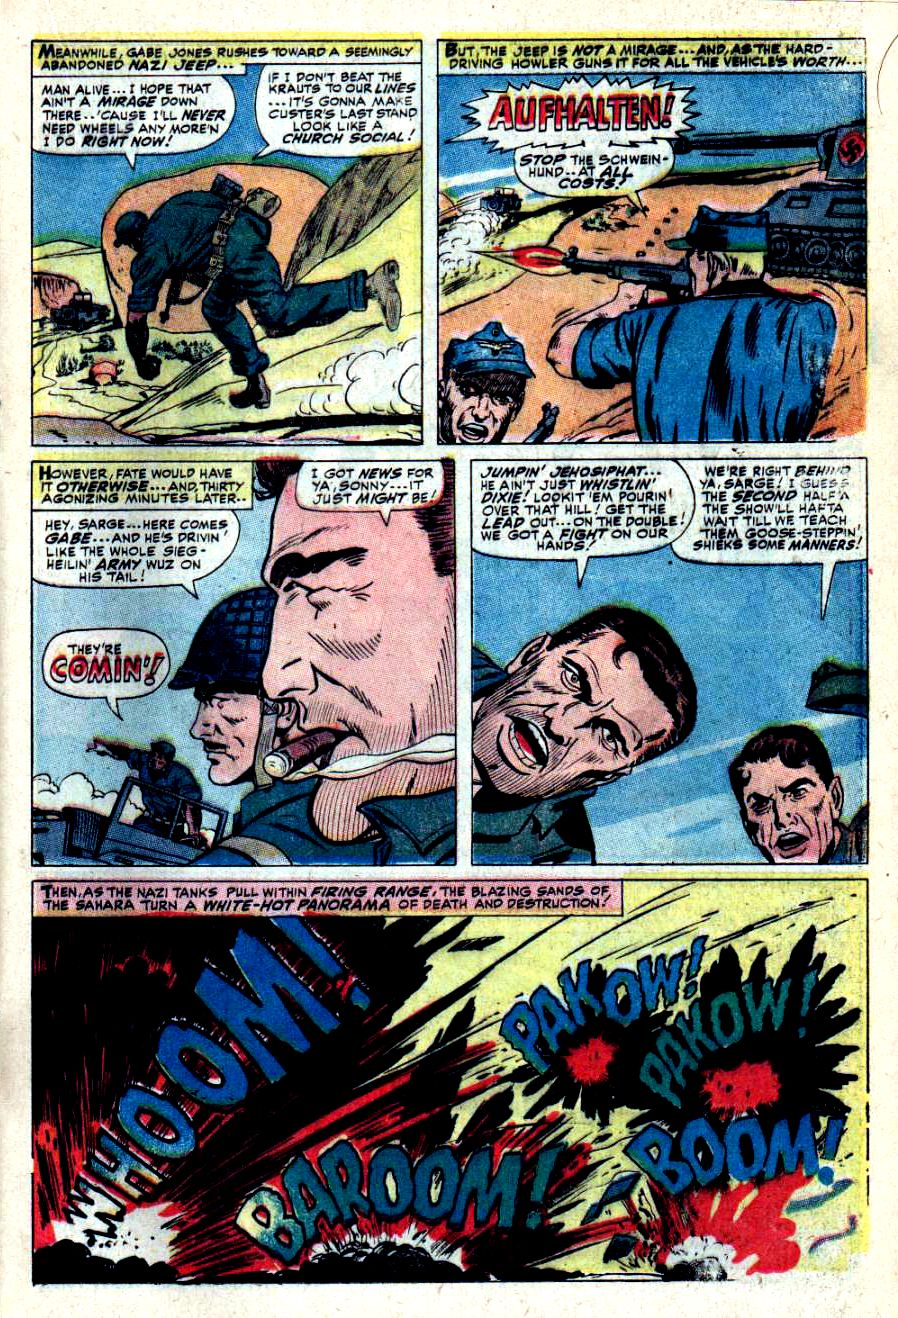 Read online Sgt. Fury comic -  Issue #43 - 17